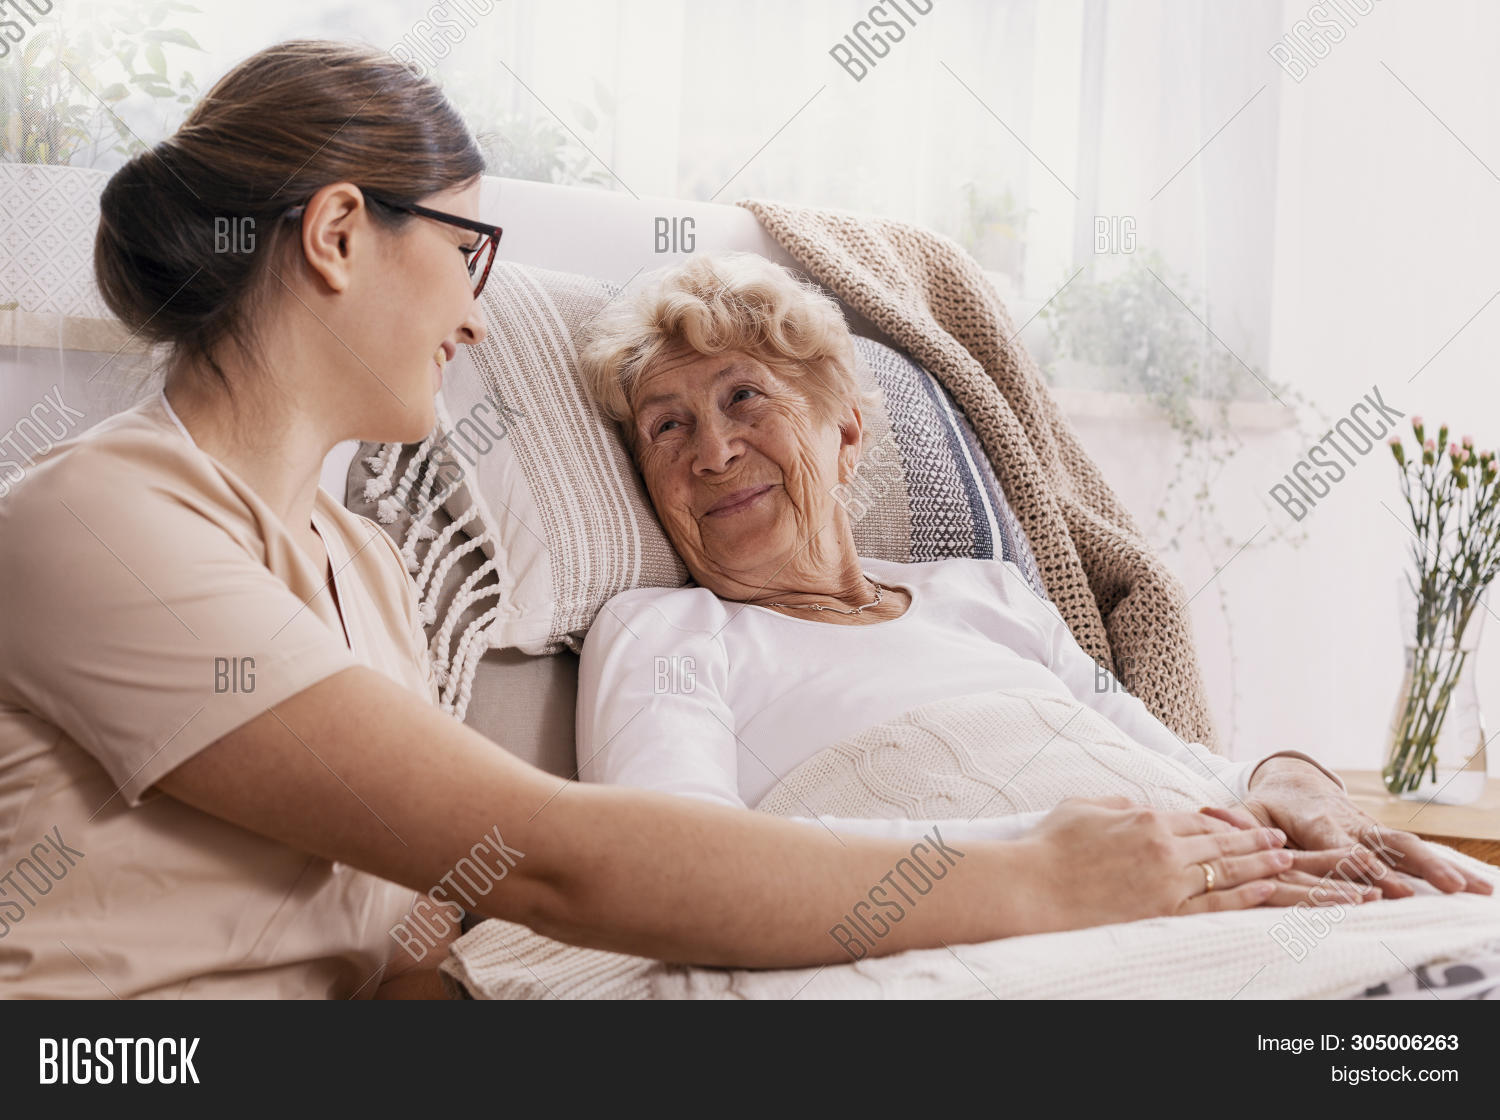 Elderly Woman In Hospital Bed With Social Worker Helping Her